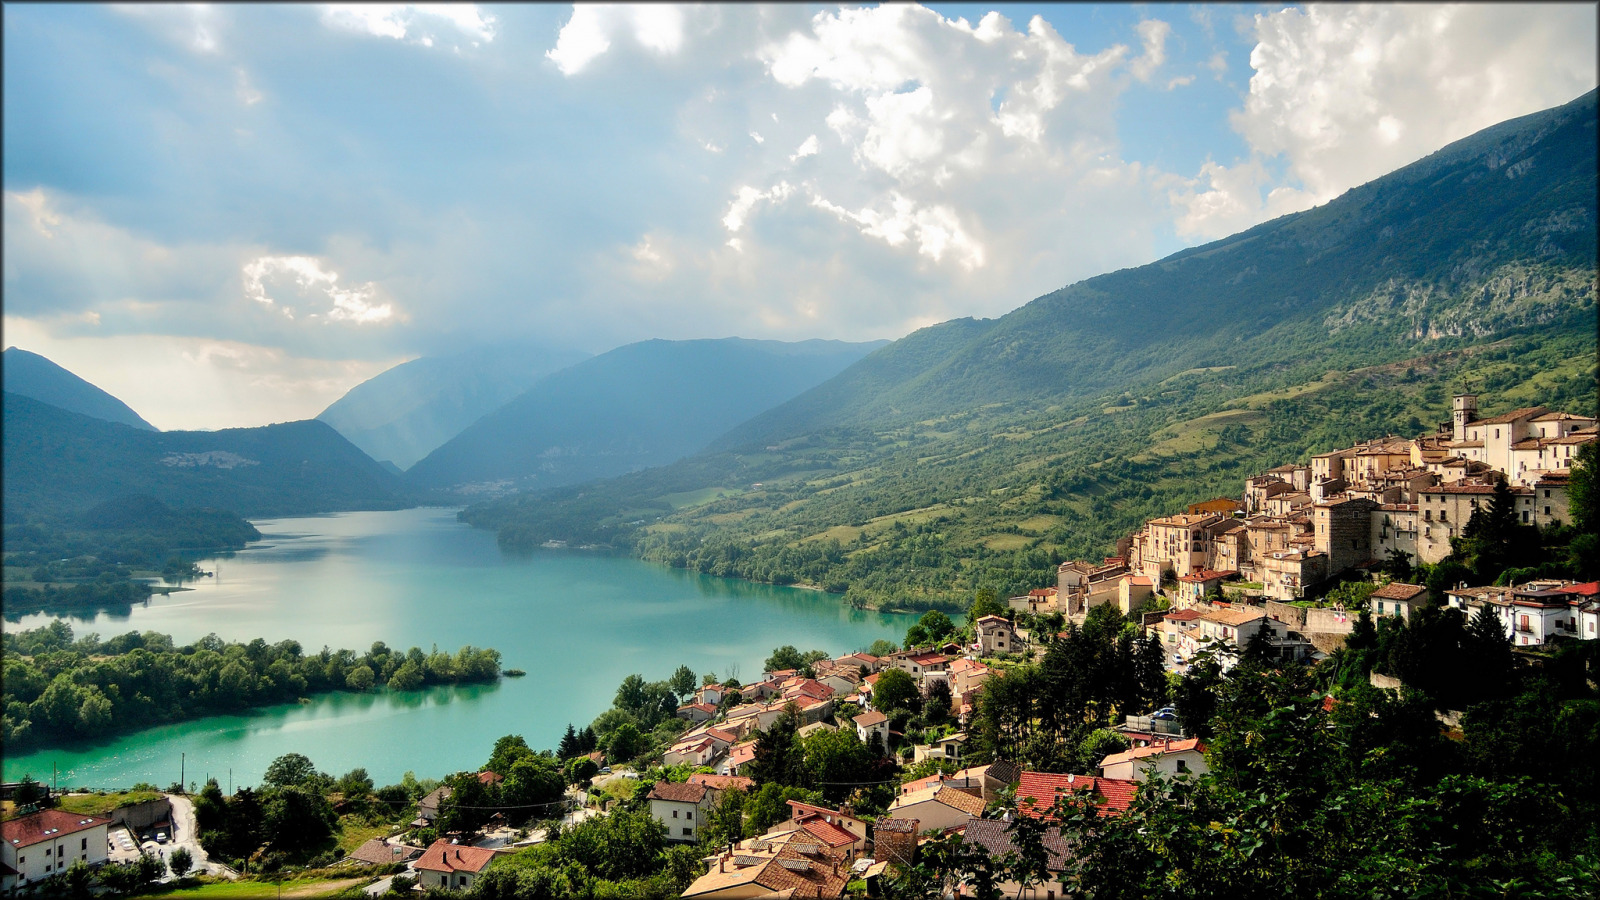 Abruzzo Rental Coast 2 adults for a month inexpensively prepare yourself